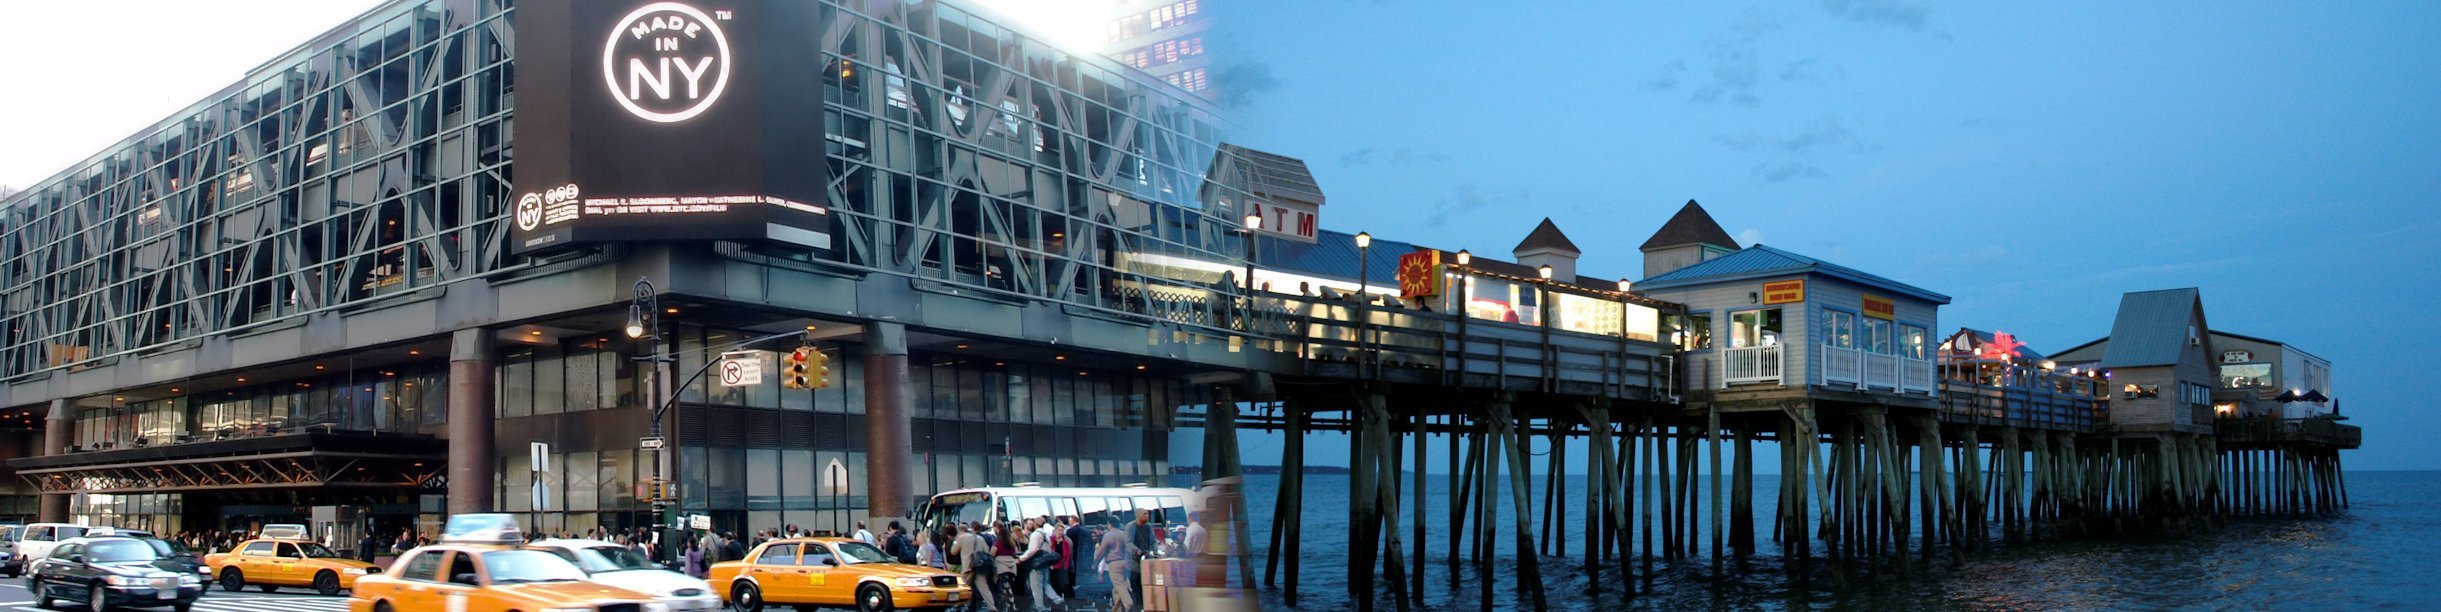 Ian's Trip Recaps blog header photo. A merged photo of New York City's Port Authority during the night and the pier at Old Orchard Beach in Maine at night.